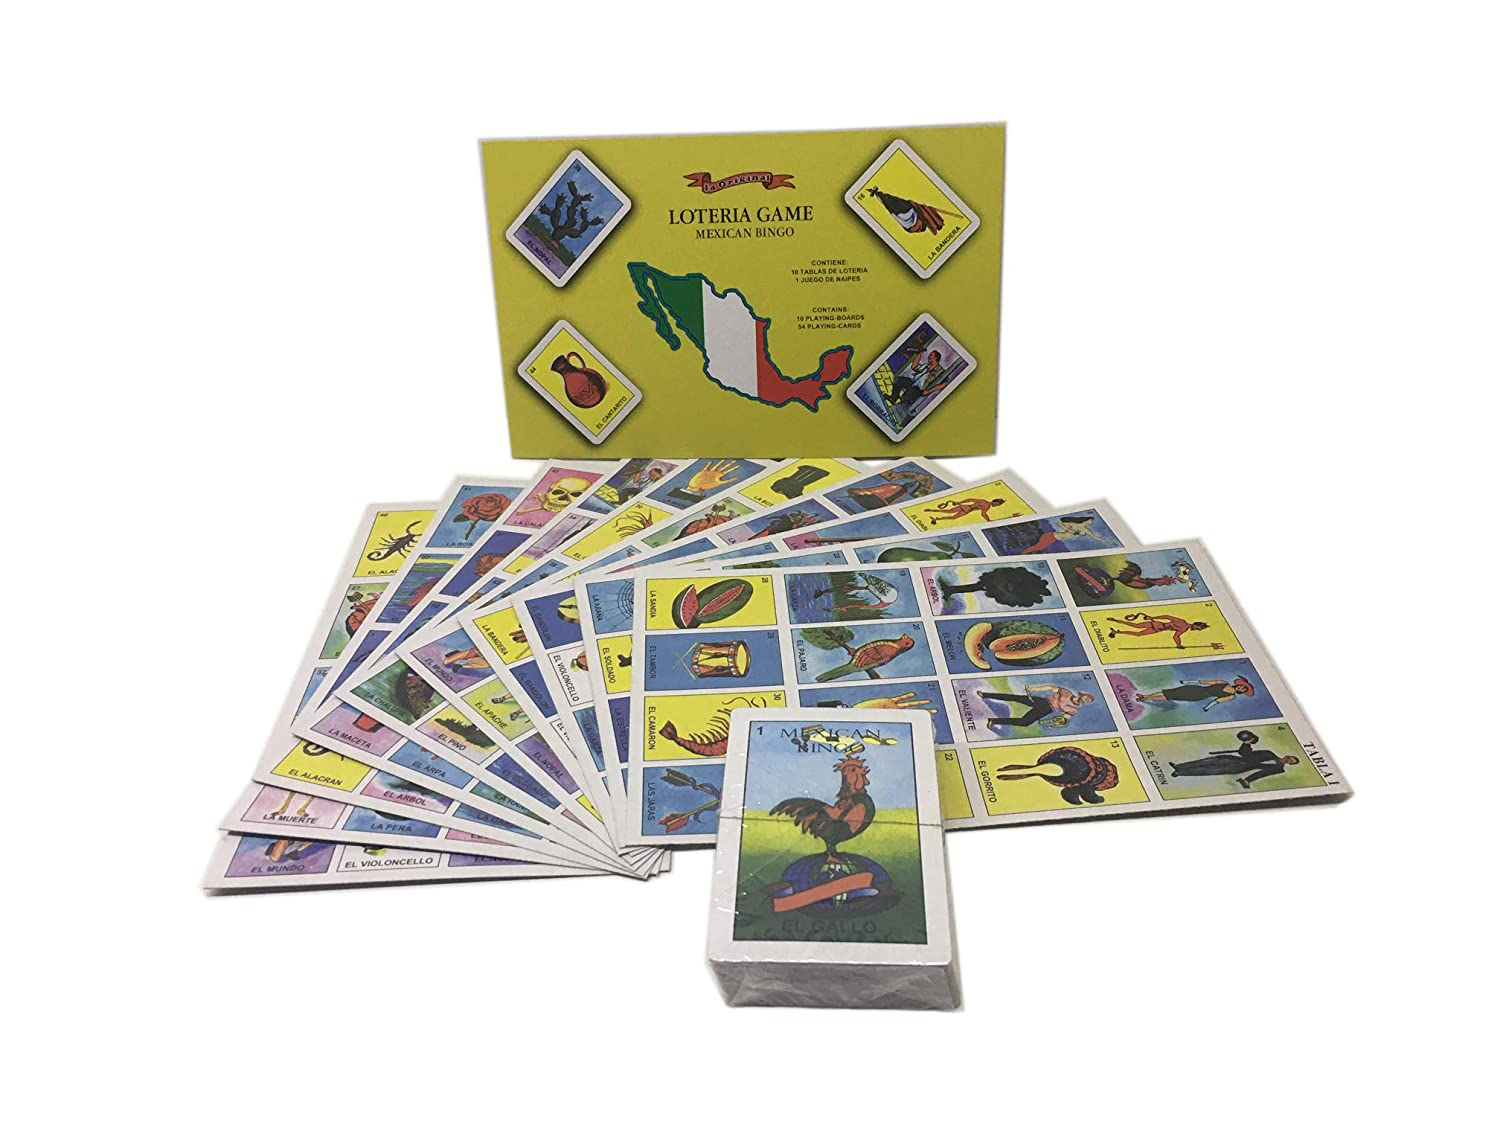 54 Playing Cards UM24 La Original Loteria Mexicana Mexican Bingo 10 Playing Boards